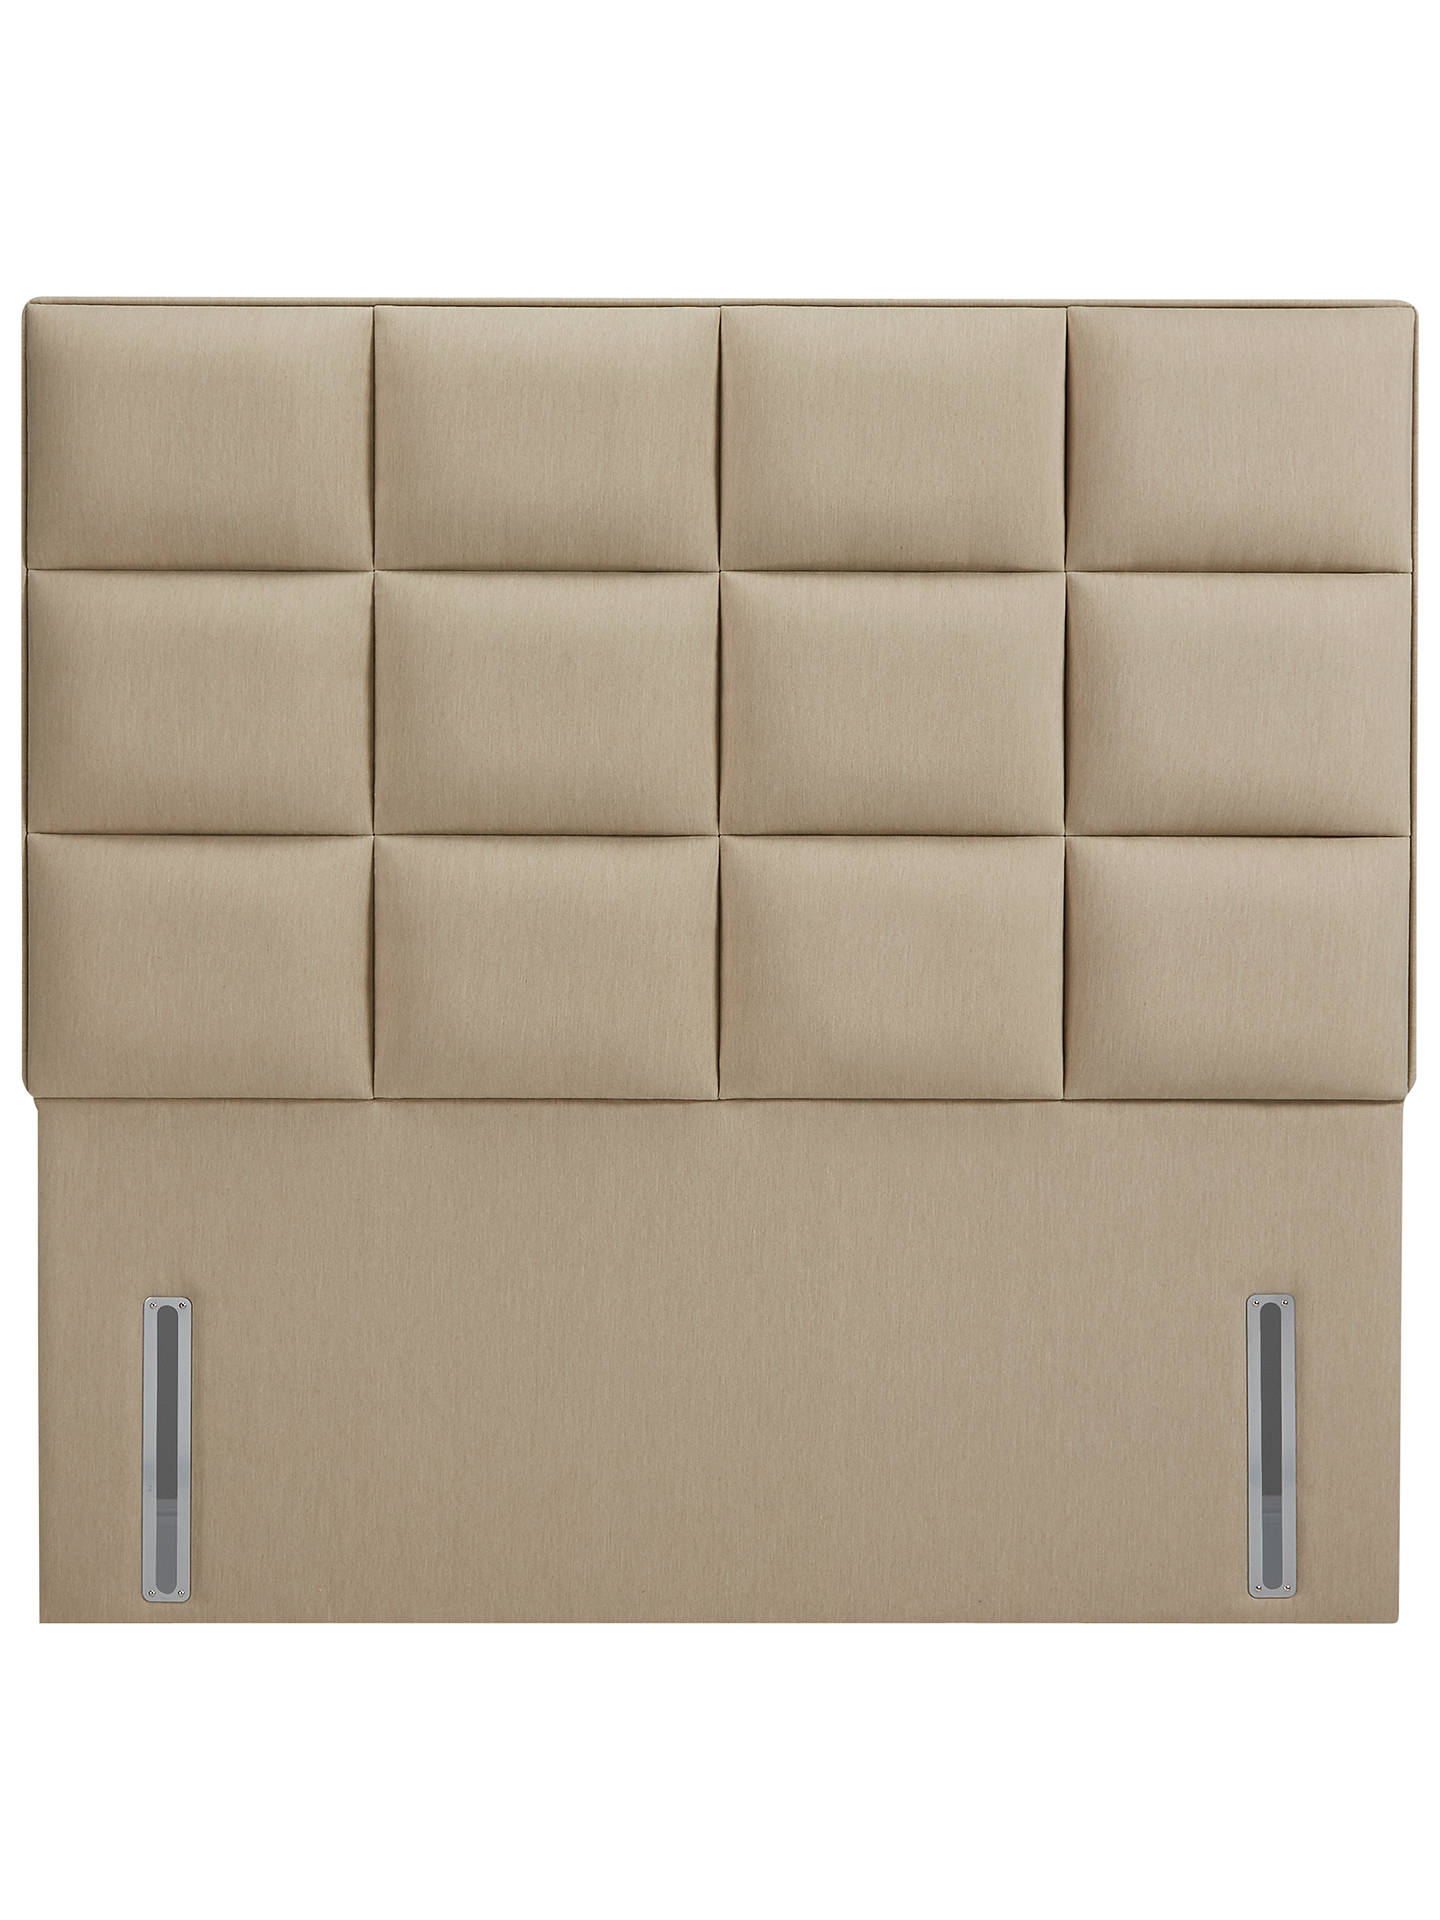 Buy John Lewis & Partners The Ultimate Collection Gloucester Headboard, Pebble Canvas, King Size Online at johnlewis.com